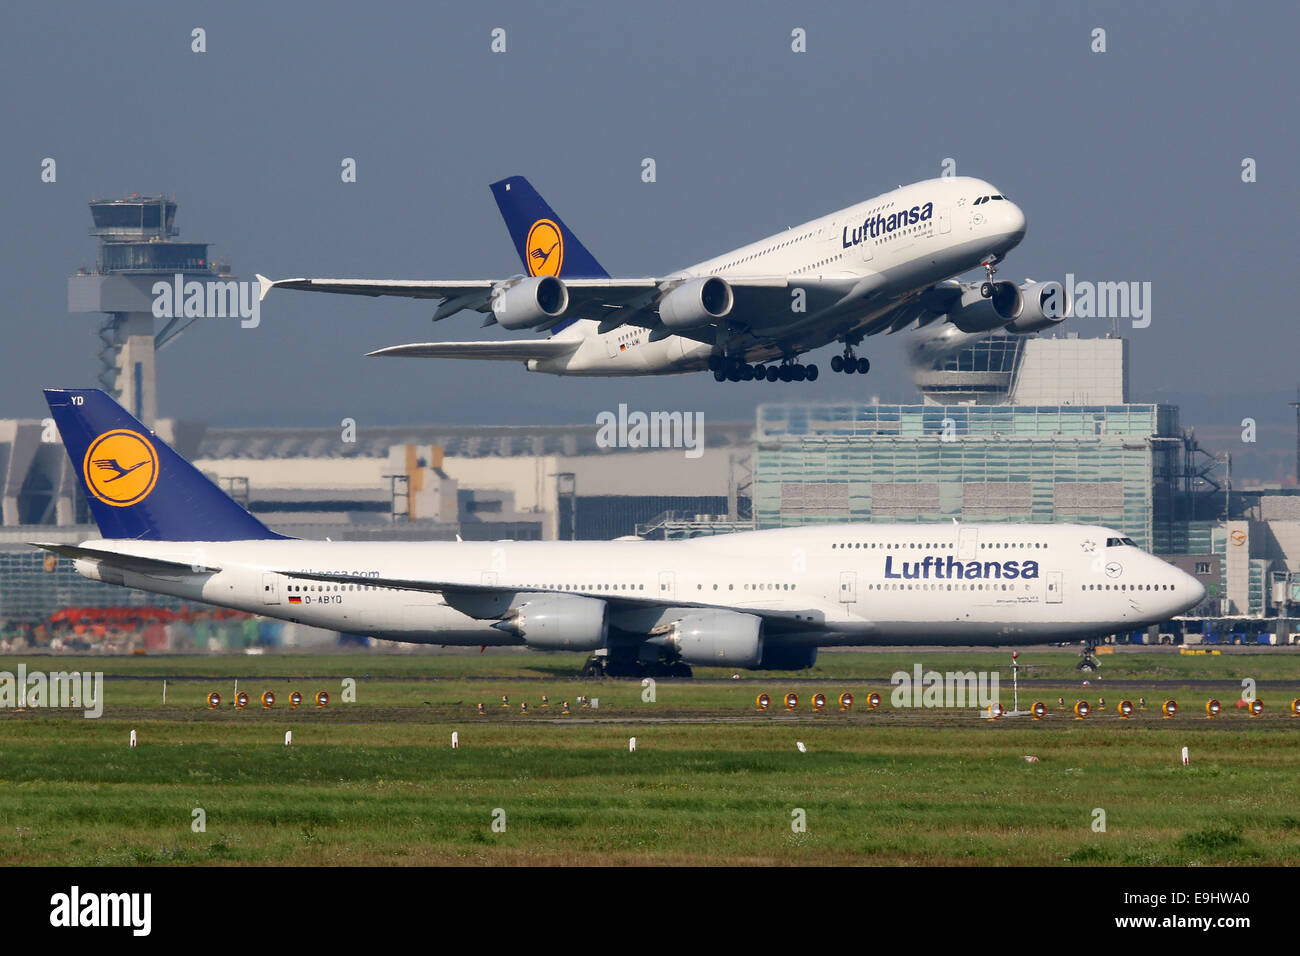 Frankfurt, Germany - September 17, 2014: Lufthansa Airbus A380 and Boeing 747 aircraft at Frankfurt Airport (FRA). - Stock Image